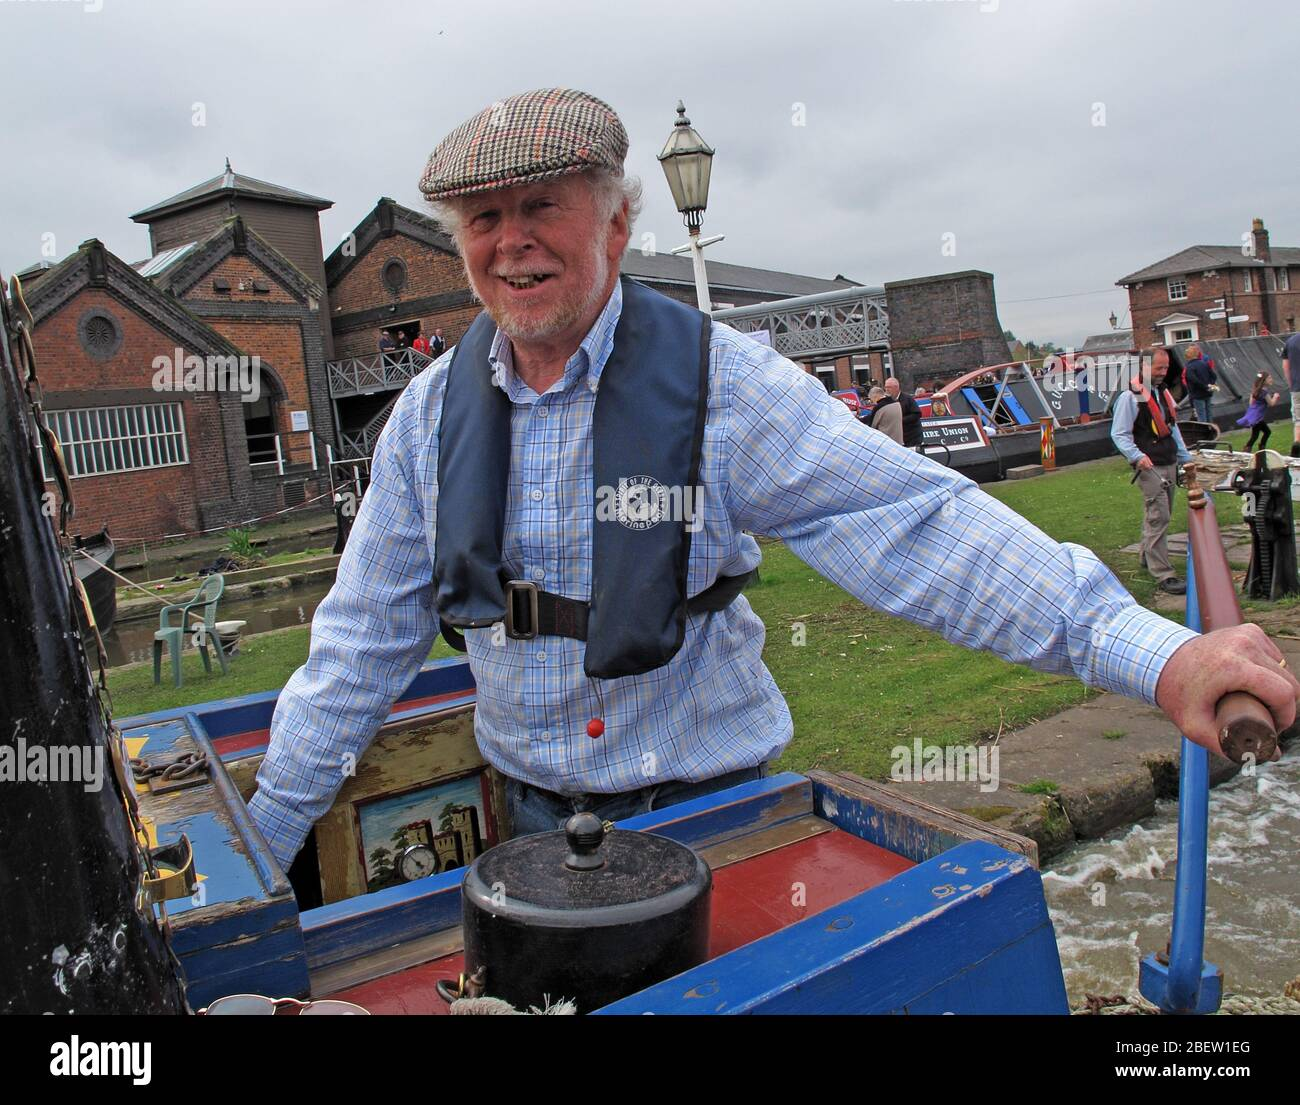 Dieses Stockfoto: Narrowboat-Bootstour im Ellesmere Port Canal Museum, British Canal and Waterways Heritage, South Pier Rd, Ellesmere Port, Cheshire, England, Großbritannien, CH65 4FW - 2BEW1E